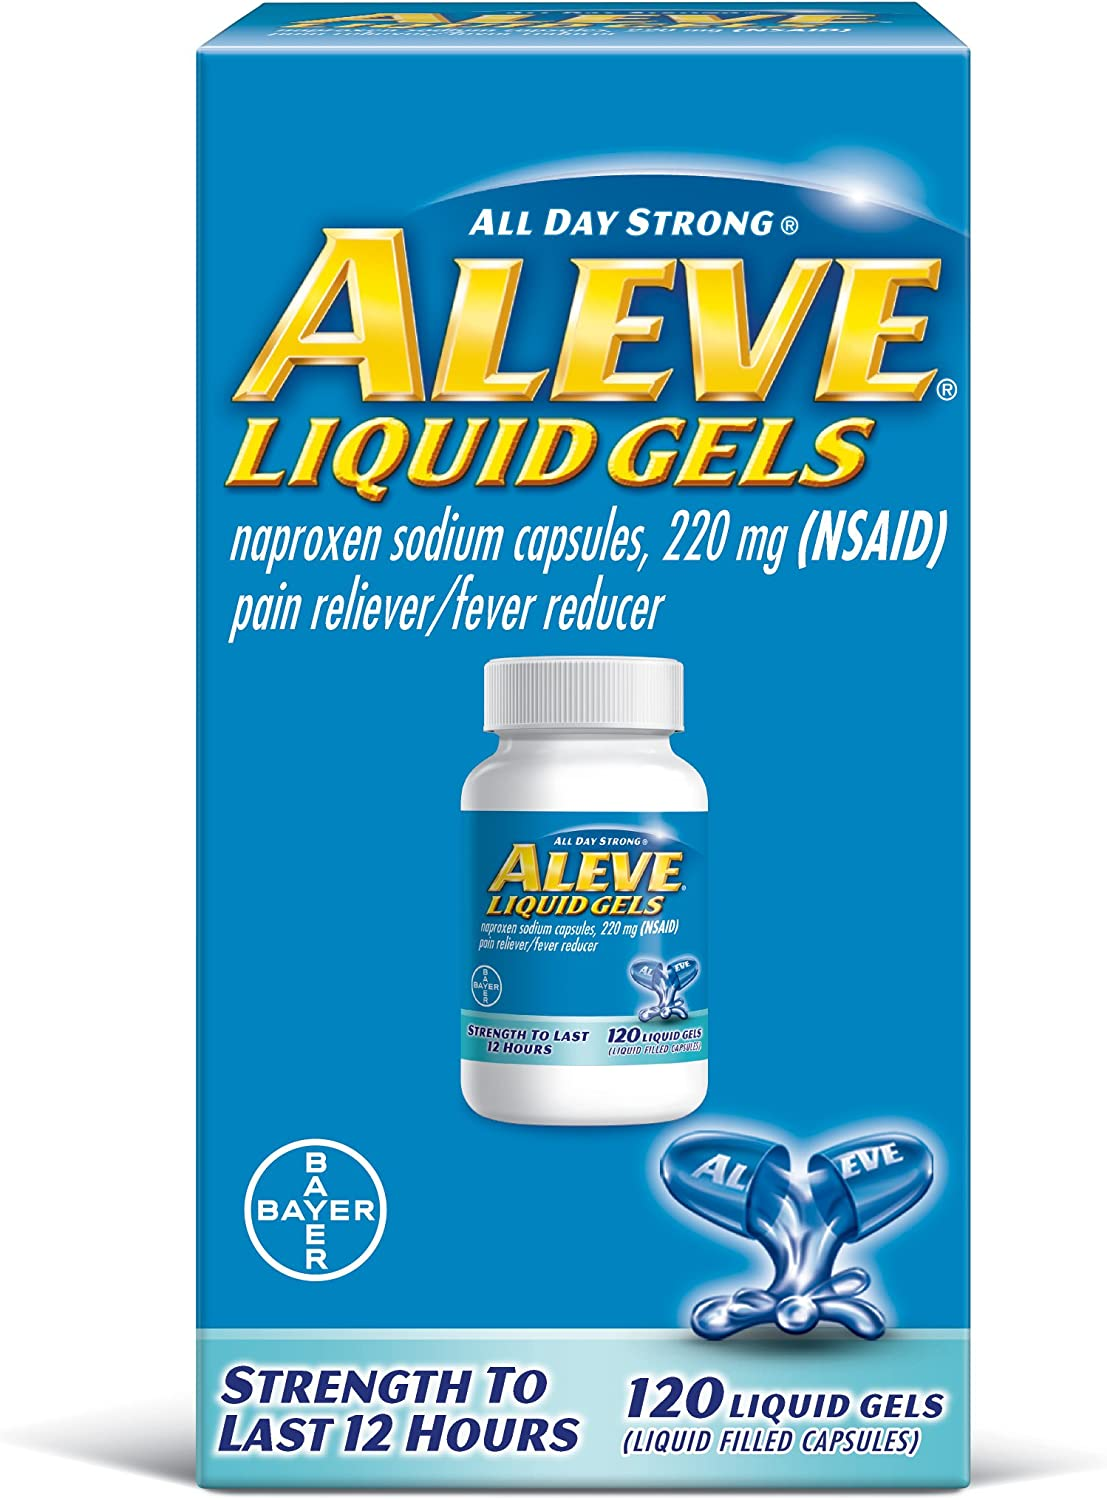 Aleve Liquid Capsules, Naproxen Sodium Capsules 220 mg (NSAID), Pain Reliever/Fever Reducer, Fast Pain Relief, 120 Count: Health & Personal Care